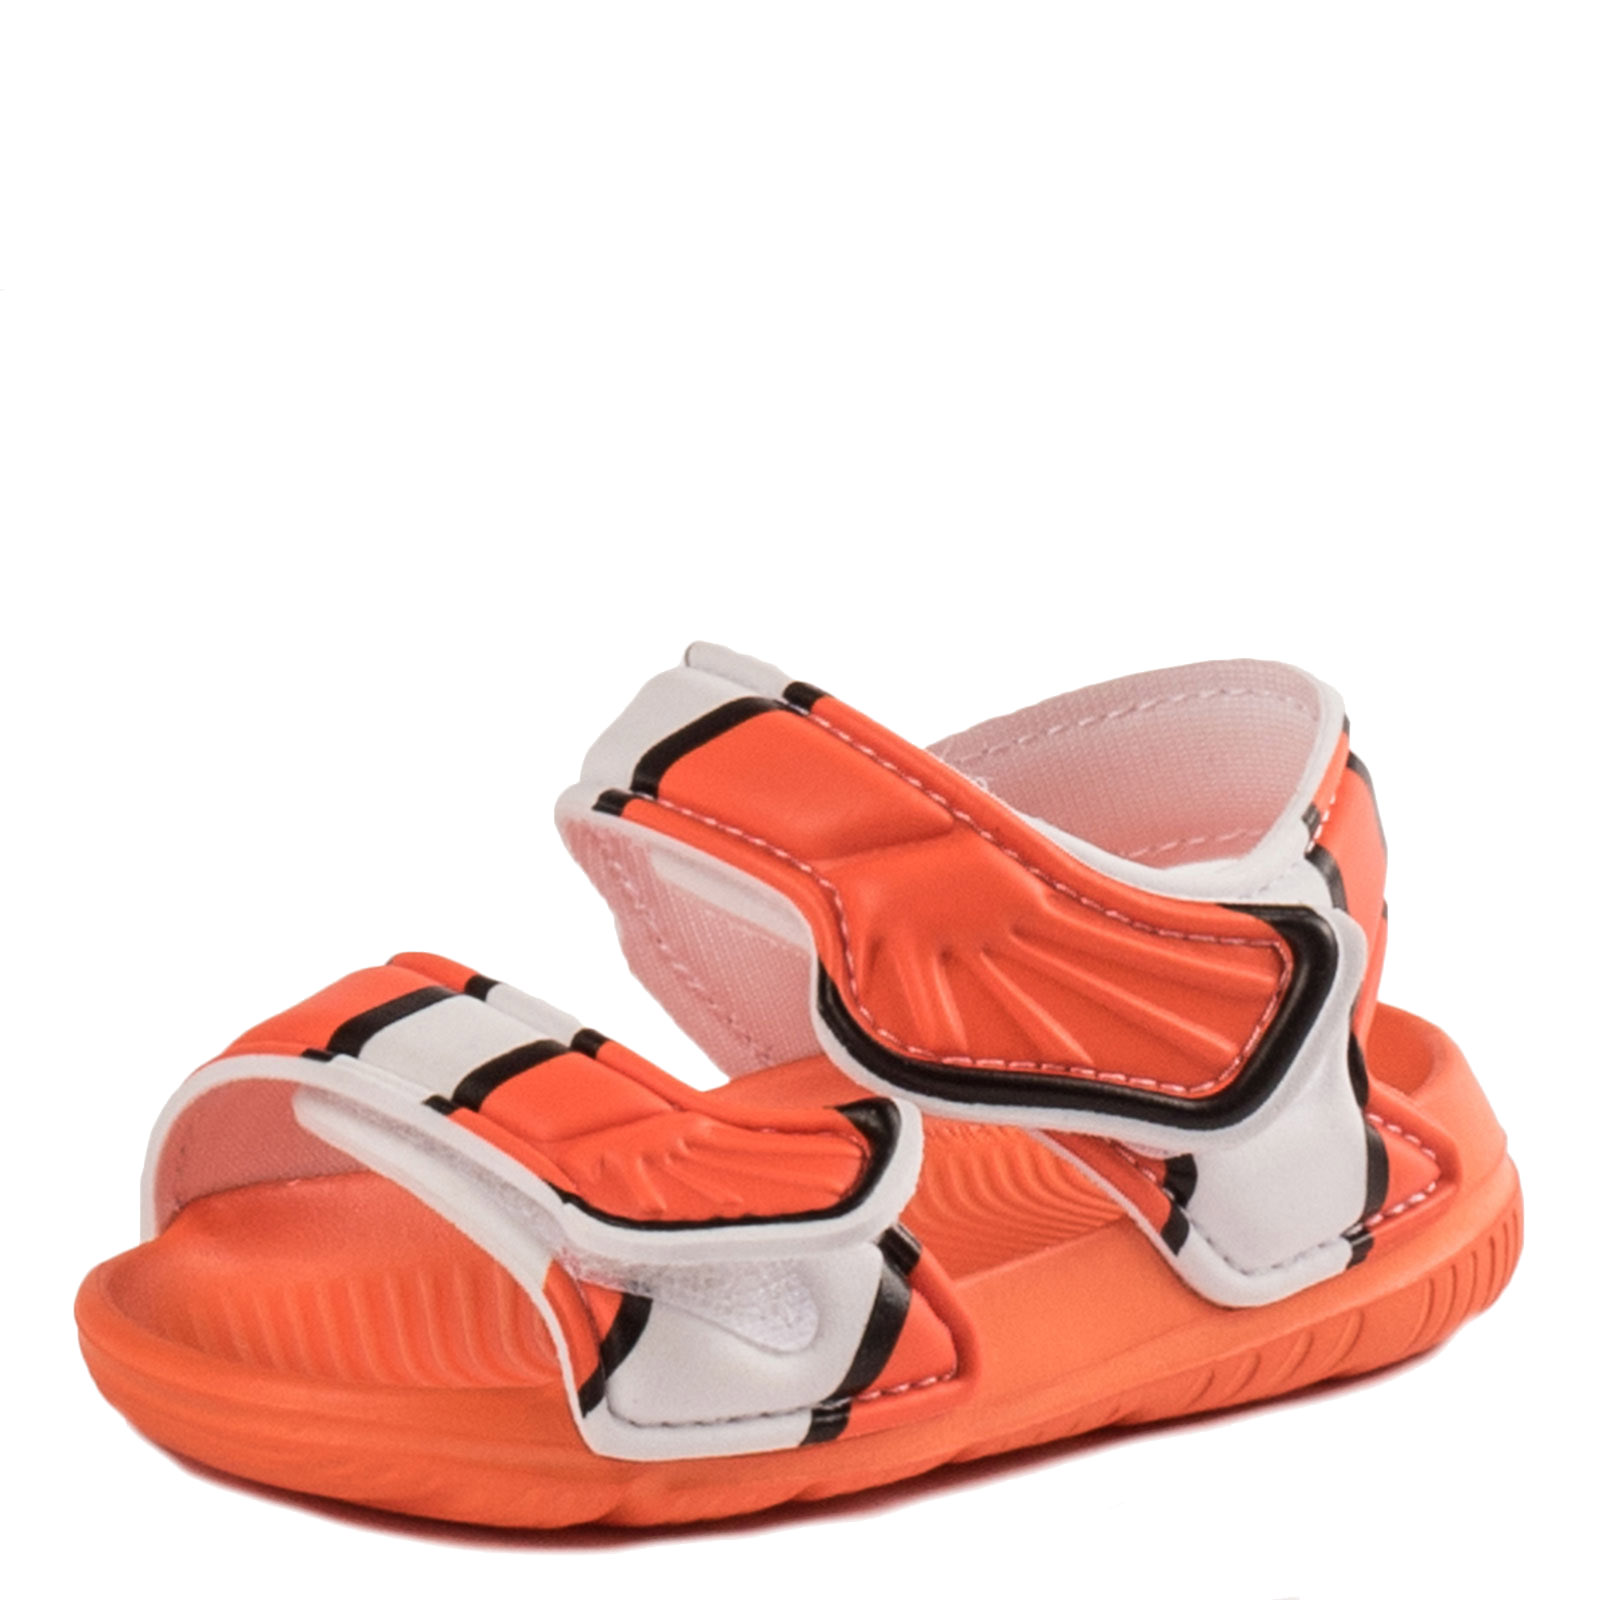 Sandals Adidas AF3921 sports and entertainment for boys 2018 women sandals flat with shoes bandage bohemia leisure lady sandals peep toe outdoor women s summer footwear shoes 3 27